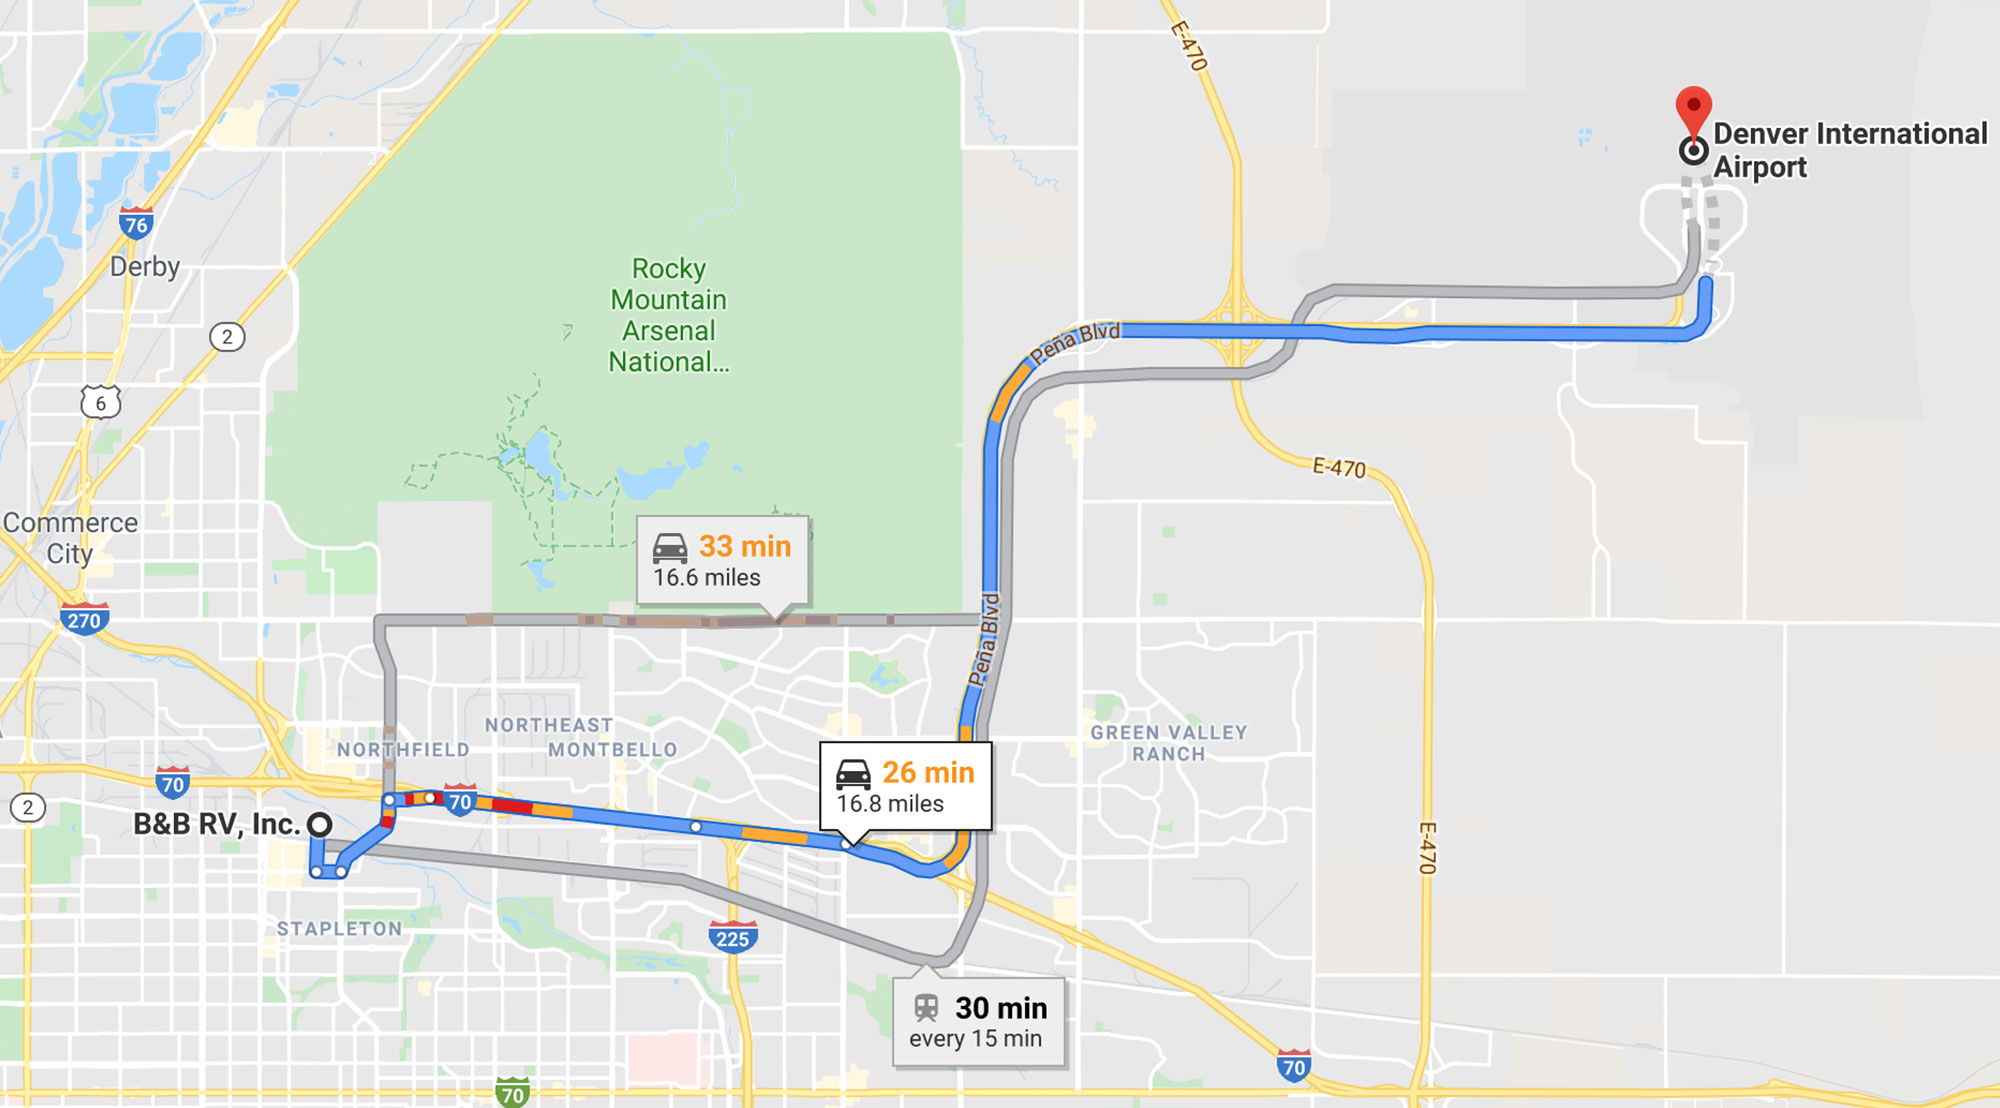 Driving Directions from Denver International Airport to B&B RV, Inc.